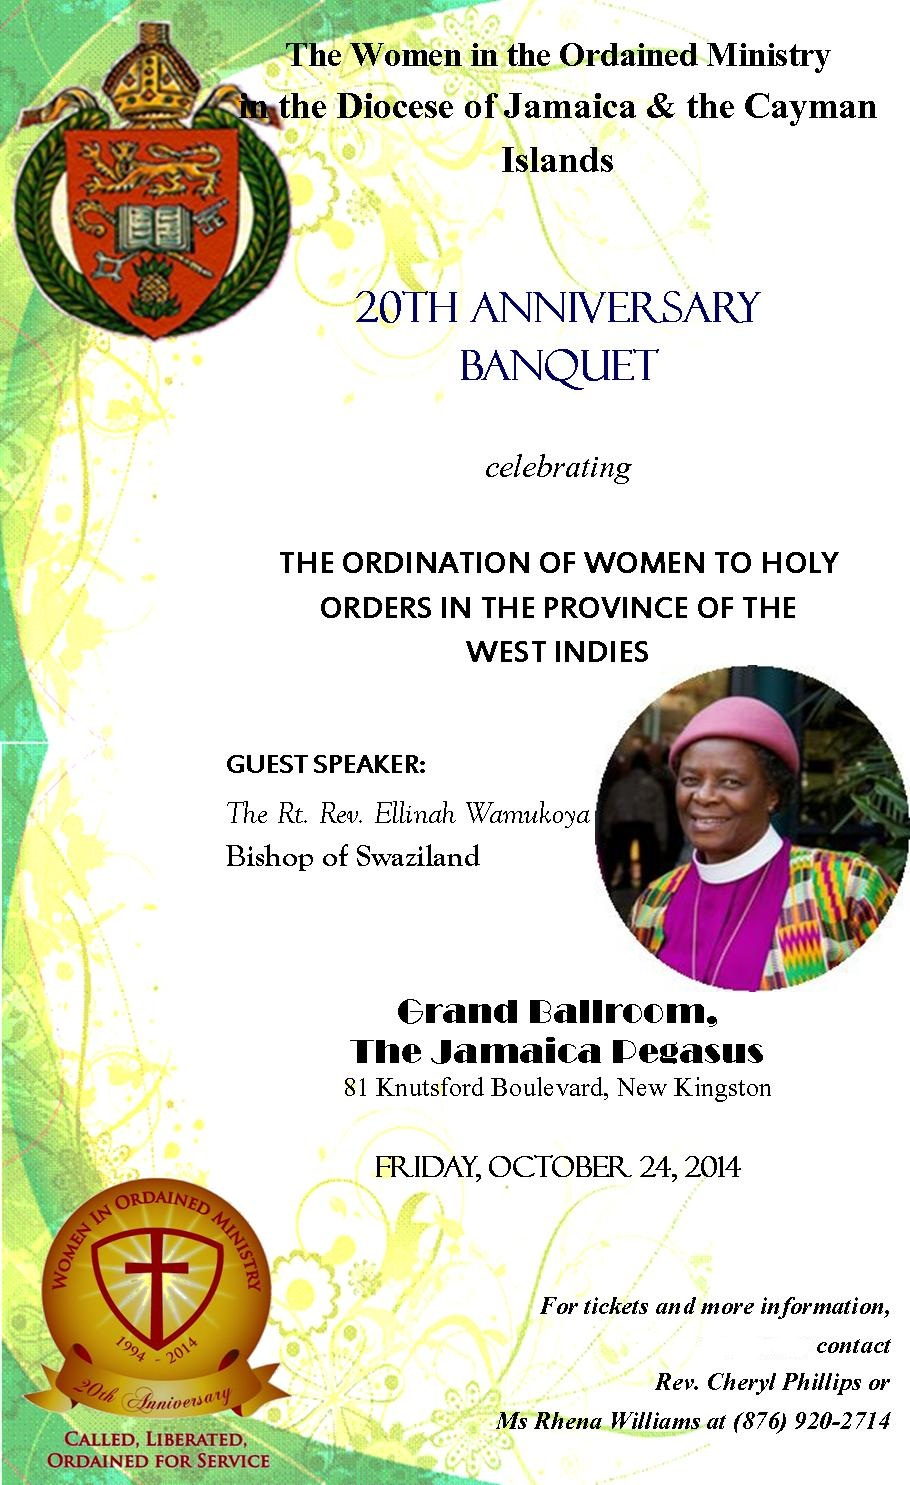 Women in Ordained Ministry 20th Anniversary – Banquet